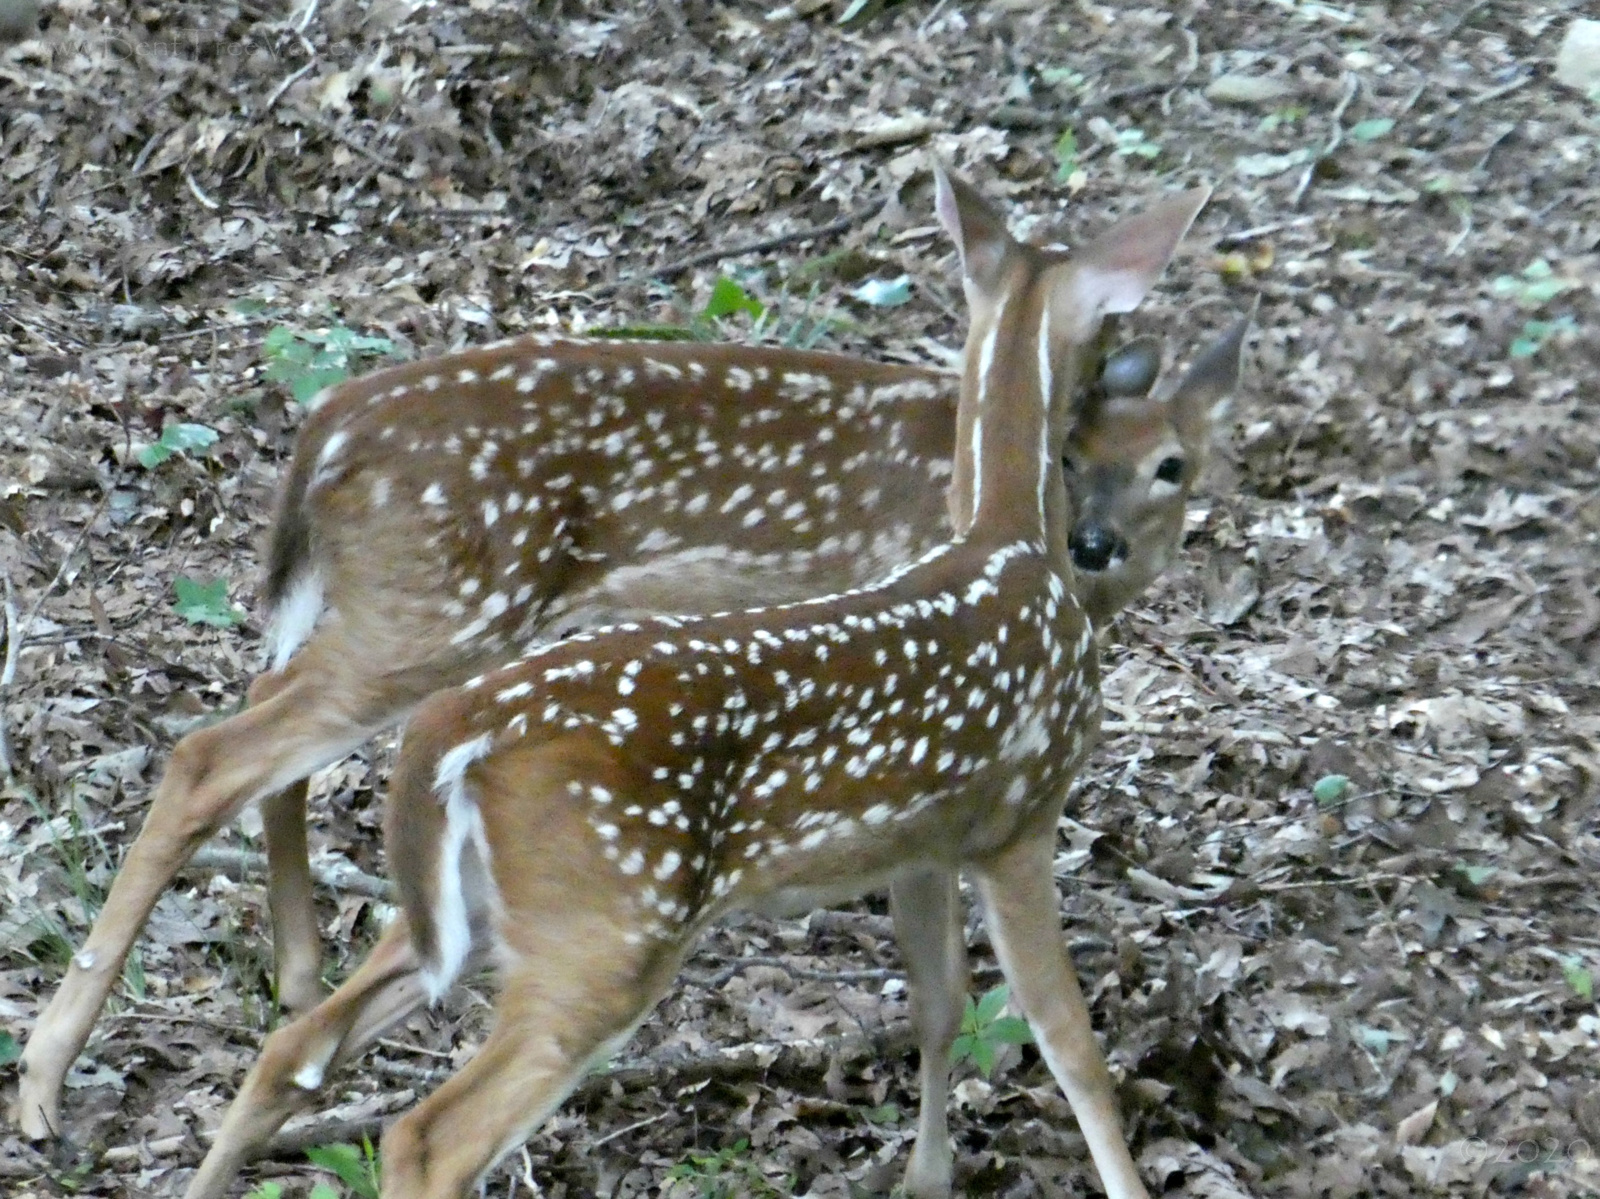 August 24, 2020 - Twin Fawns in Bent Tree